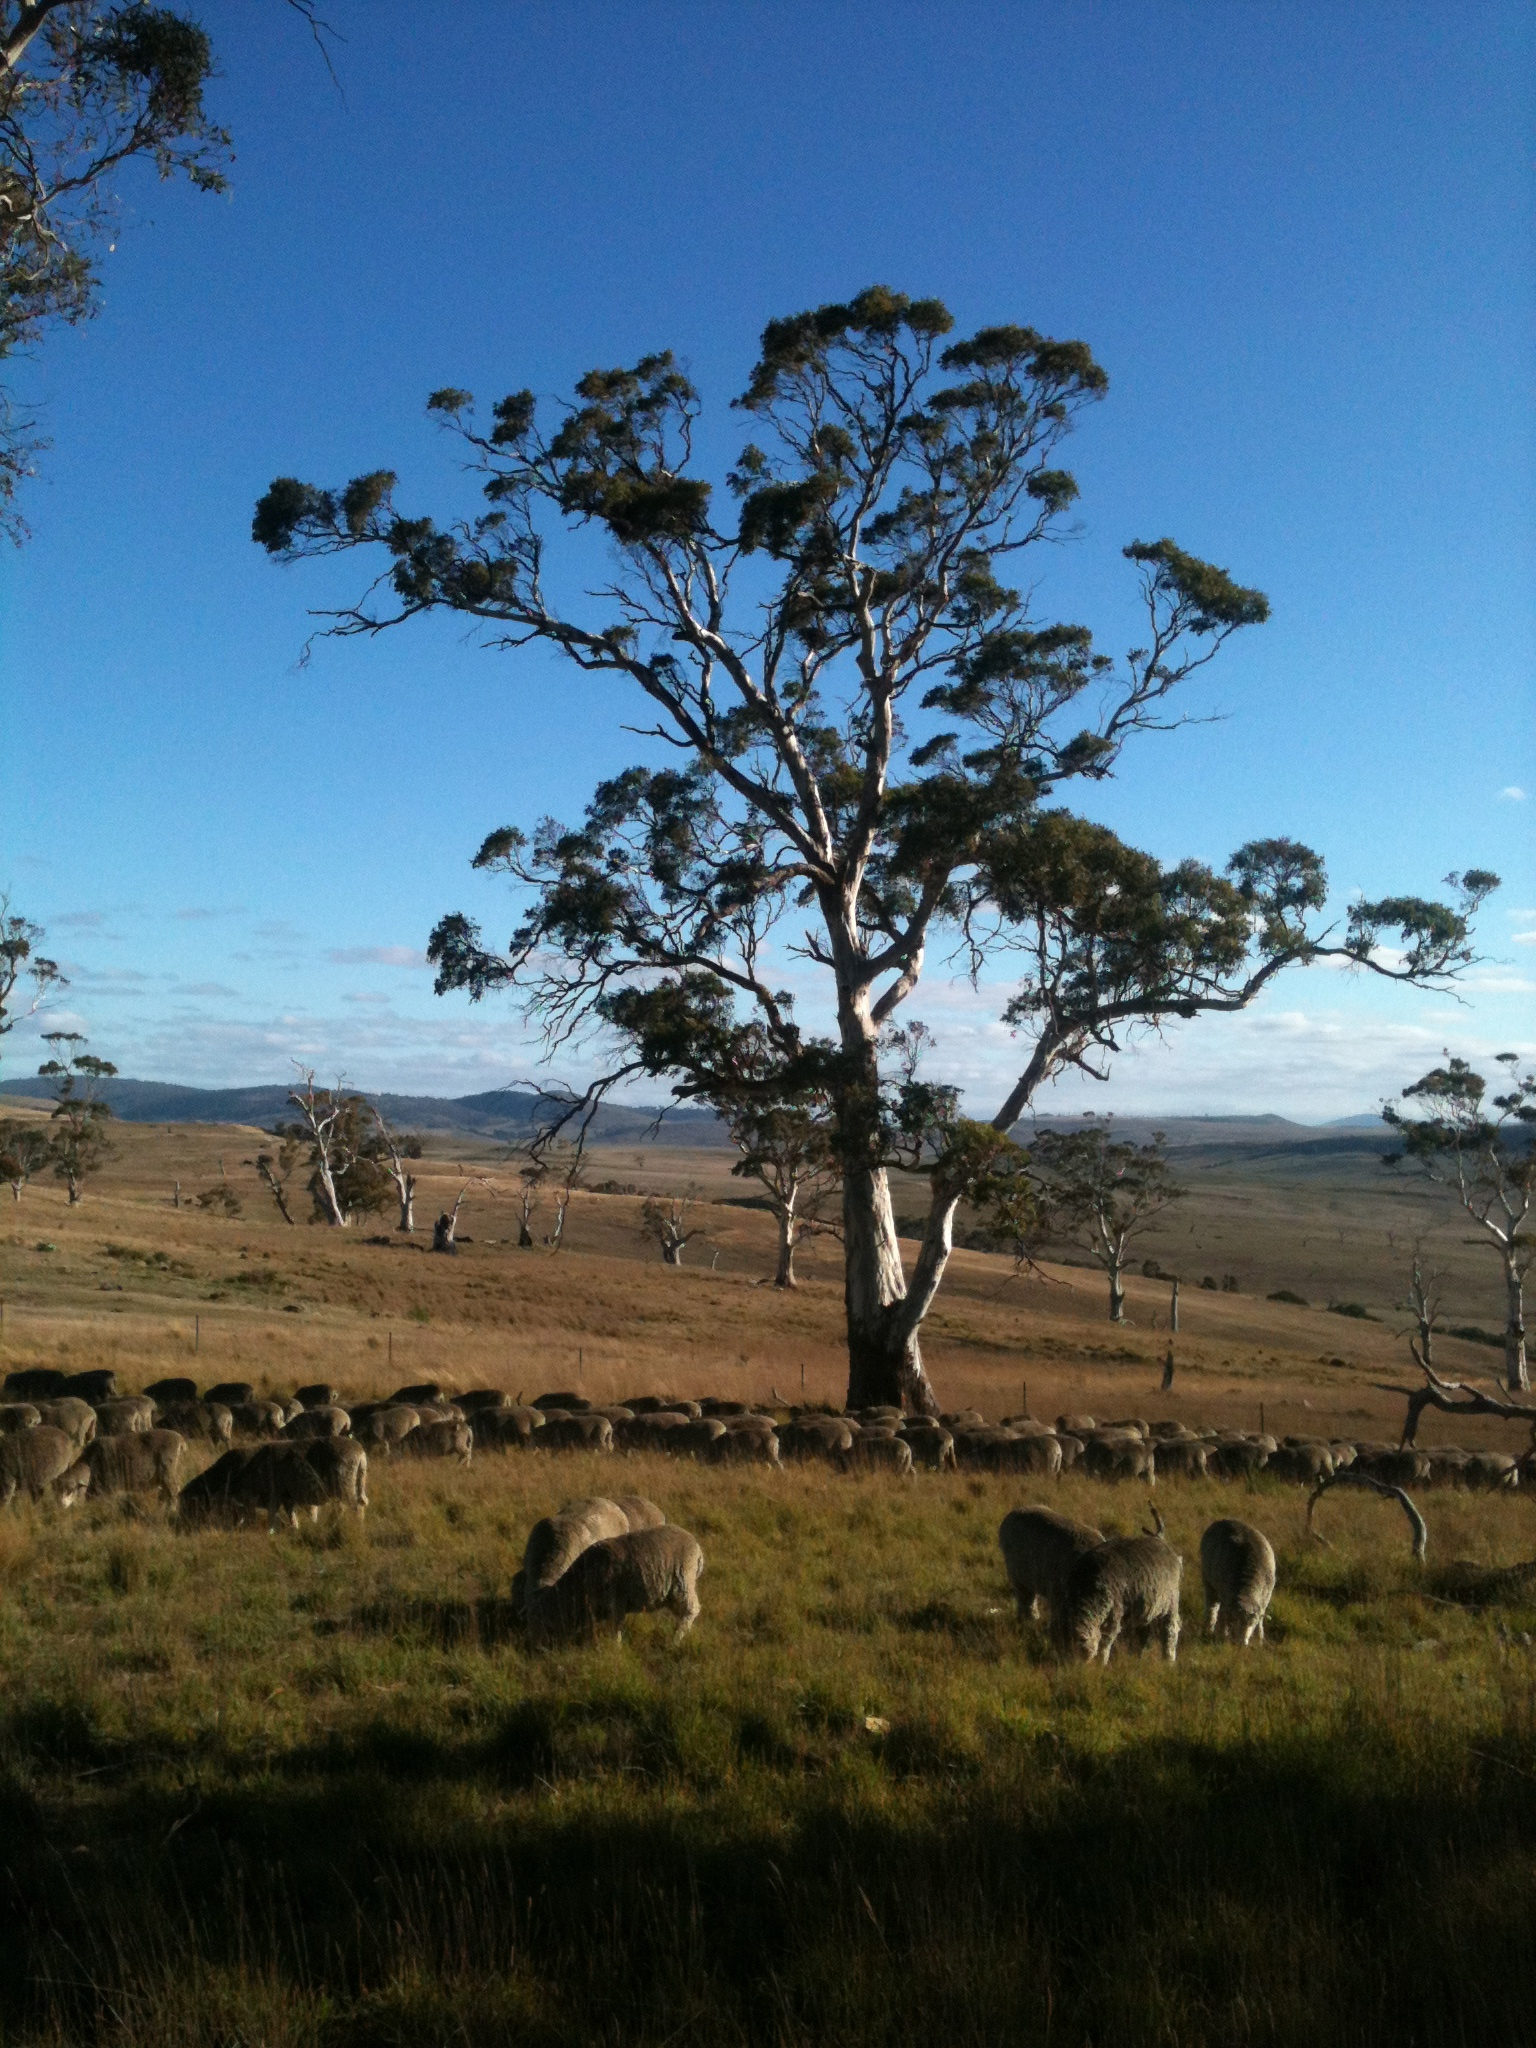 Just before mid-day rest in the grazing circuit, the flock is enjoying a particularly nice bit of forage, with a white gum (eucalyptus viminalis) as backdrop.